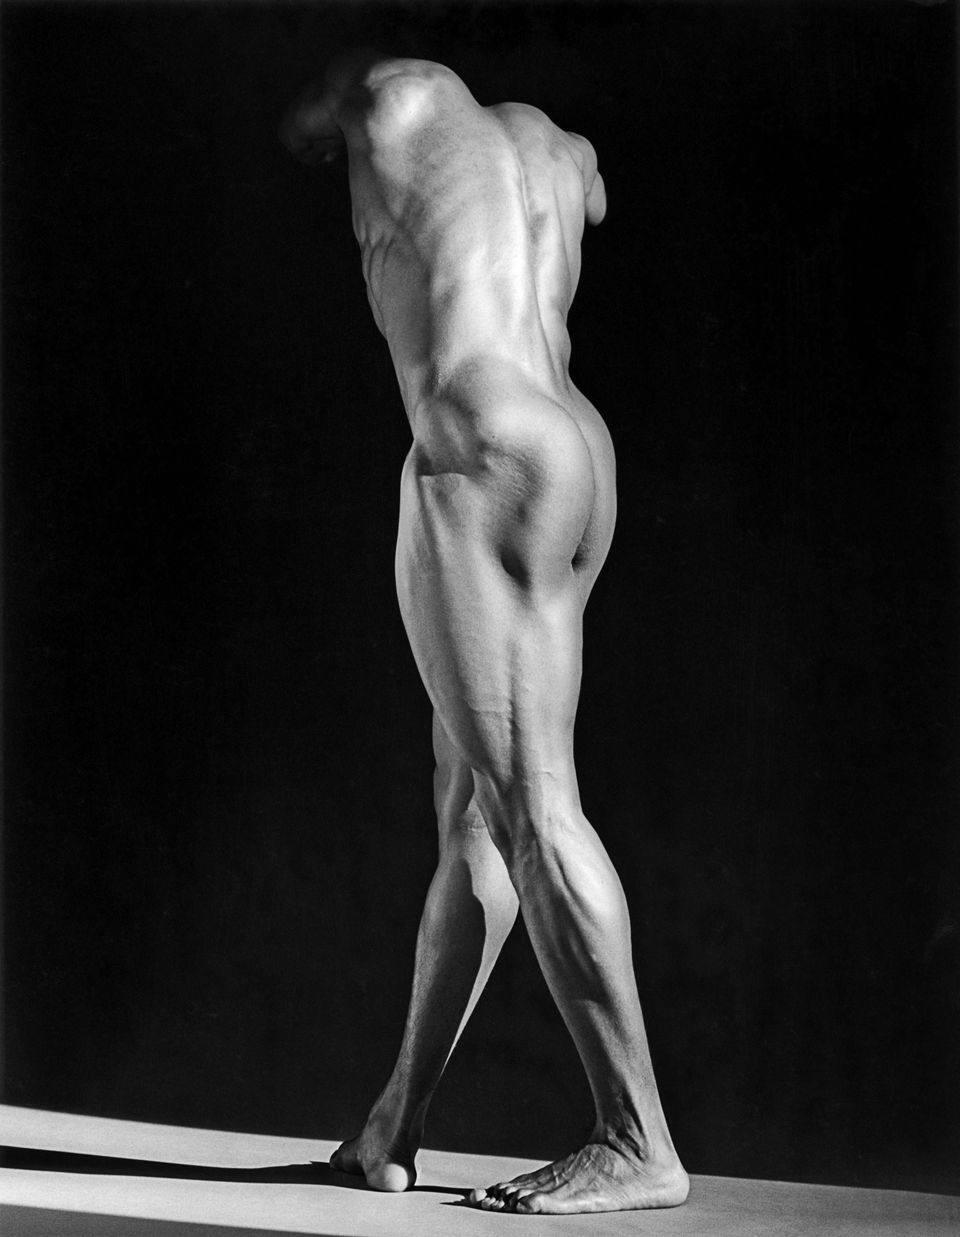 La fotograf&iacute;a de Robert Mappelthorpe